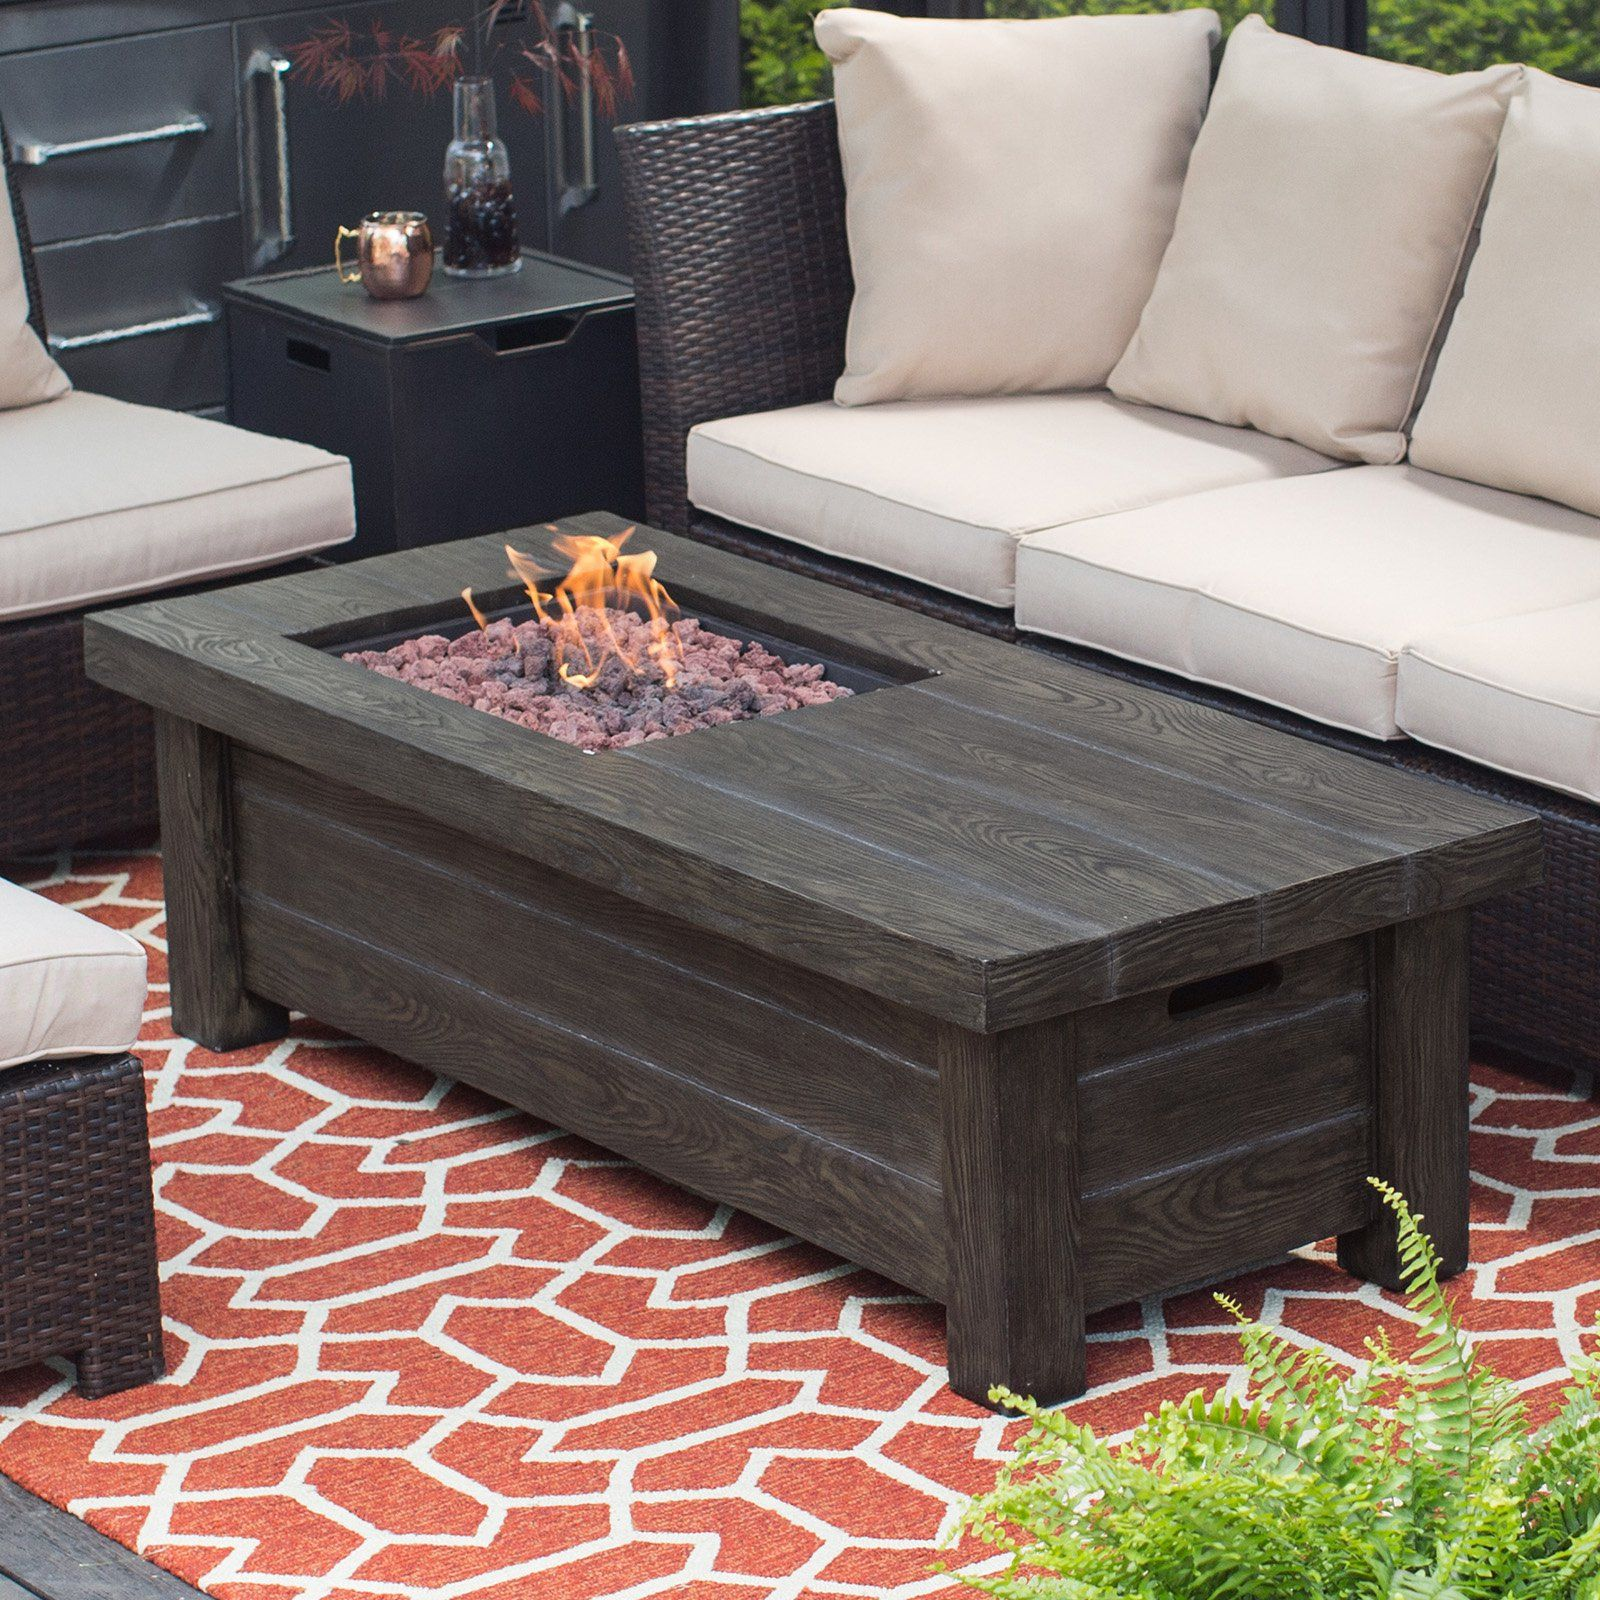 Red Ember Driftwood Fire Pit Table Gather around the Red Ember